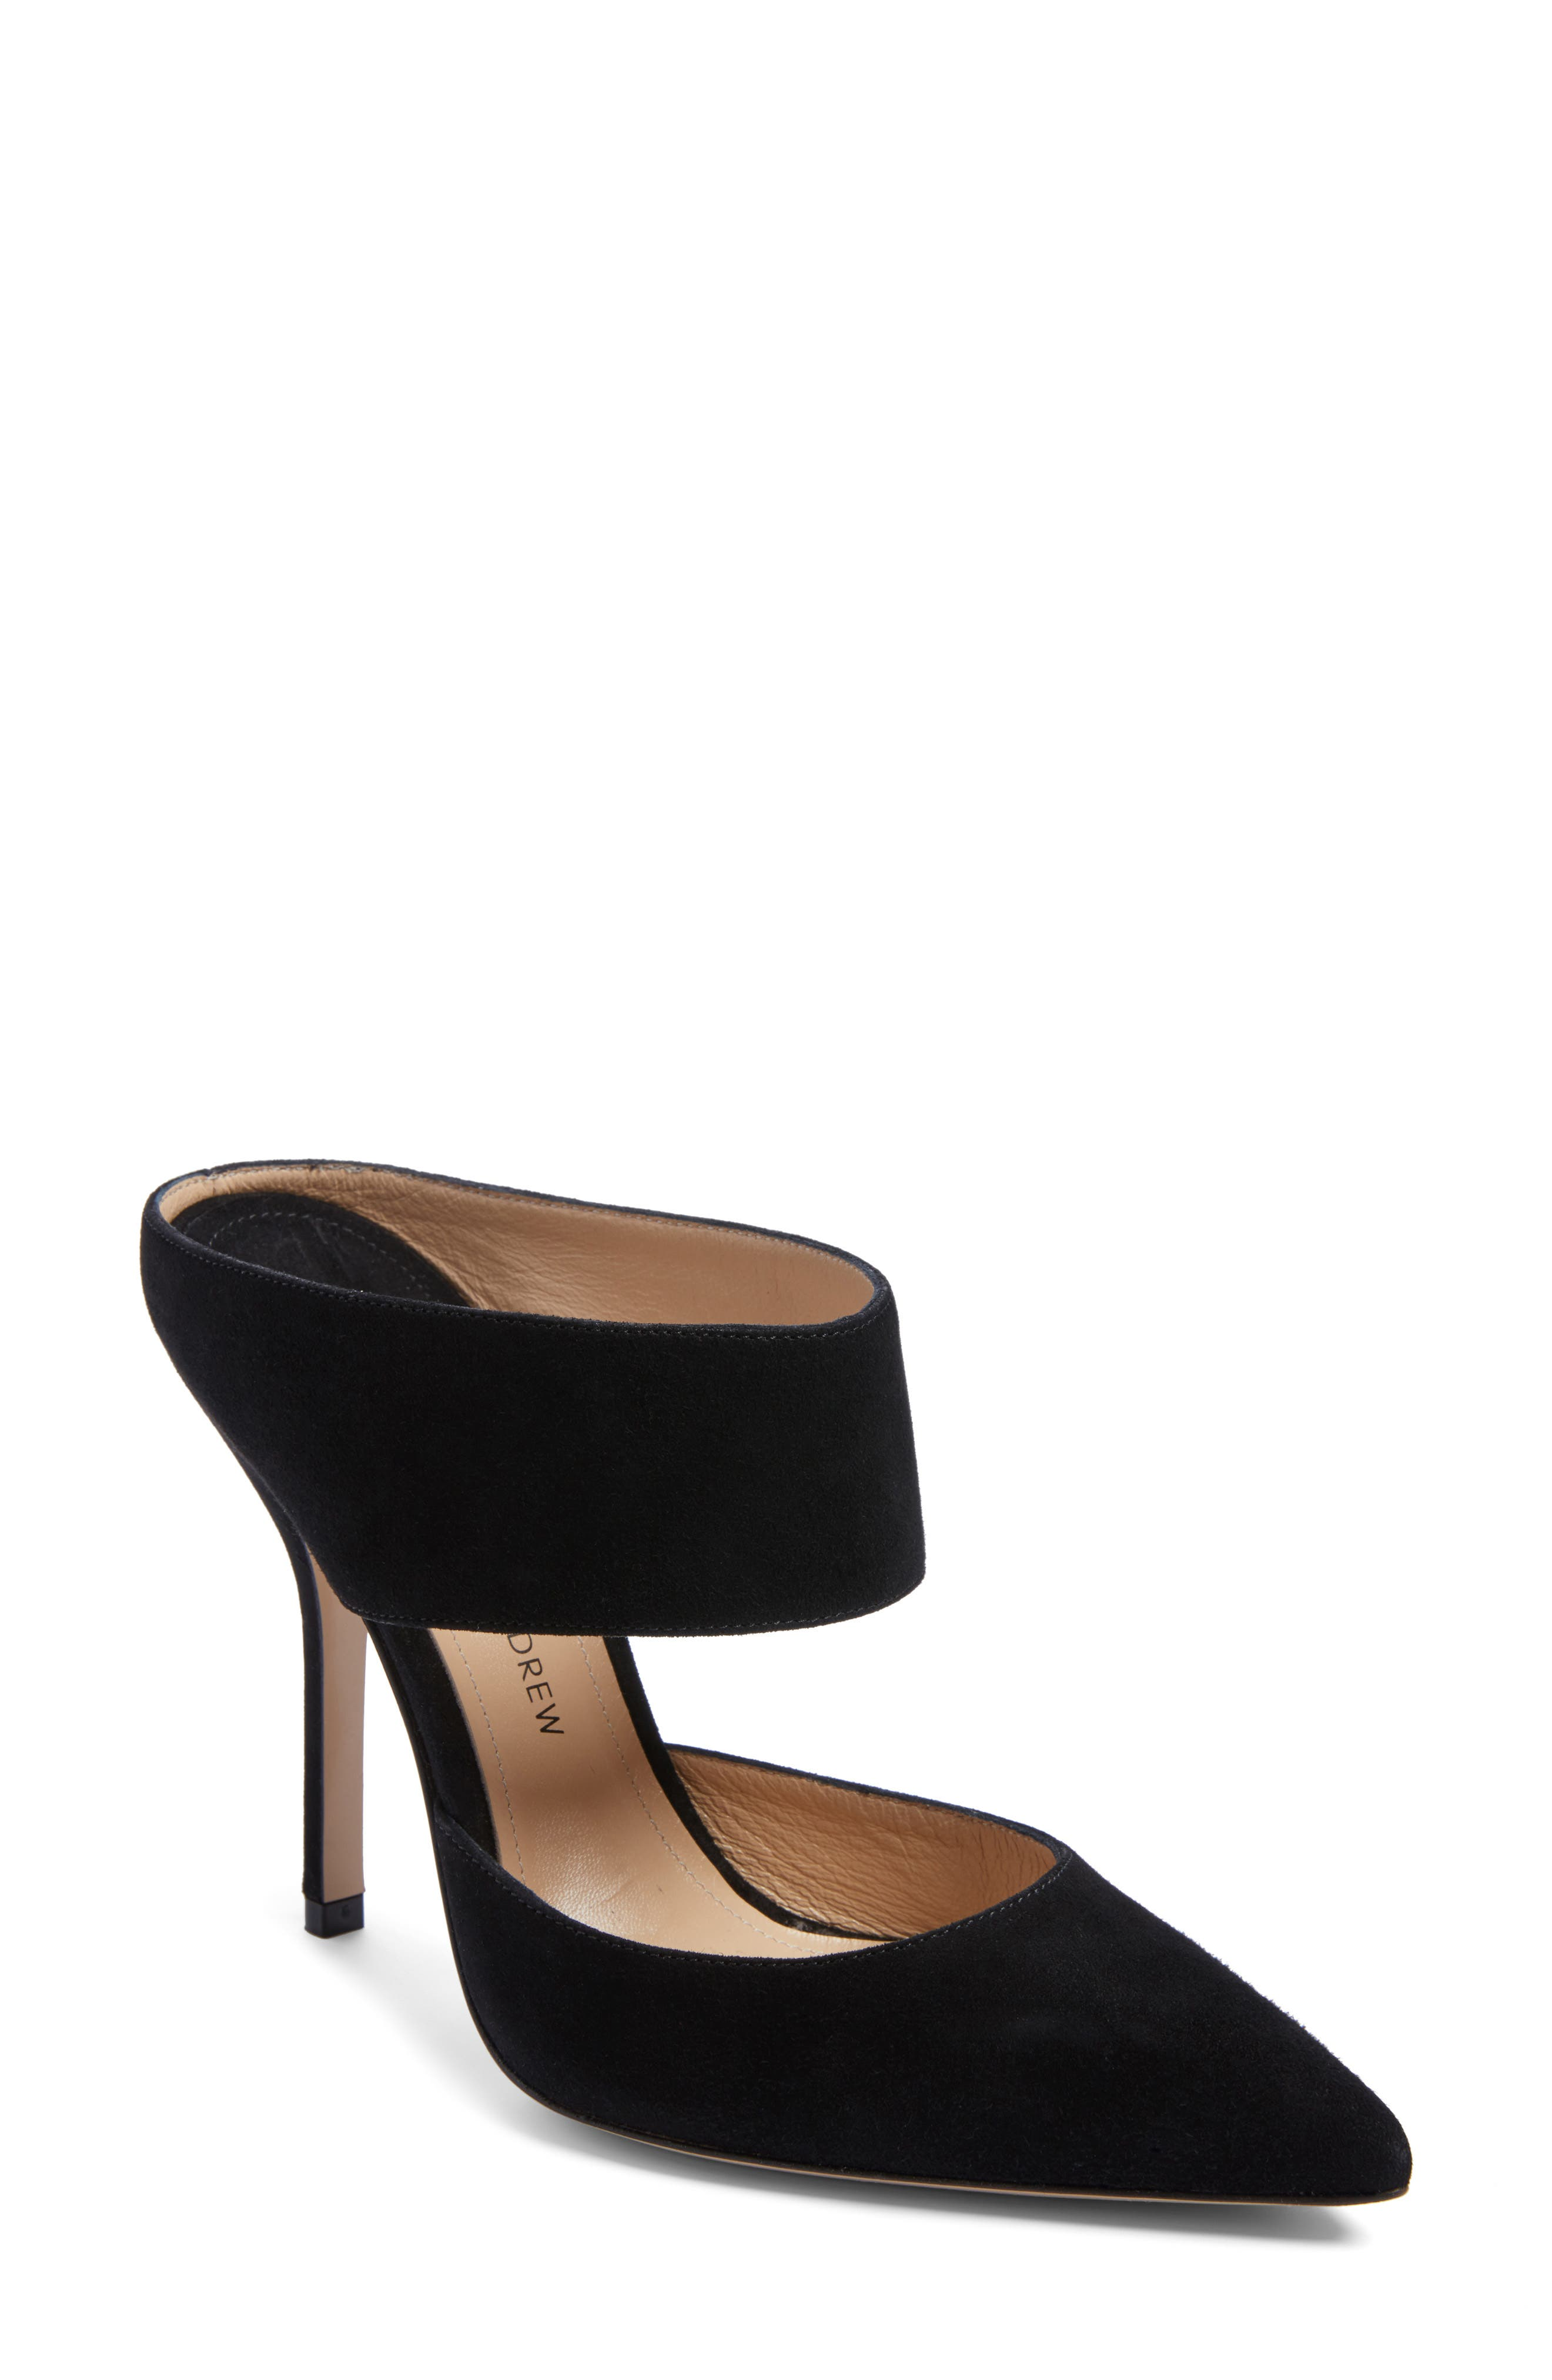 Paul Andrew Rusca Pump (Women)